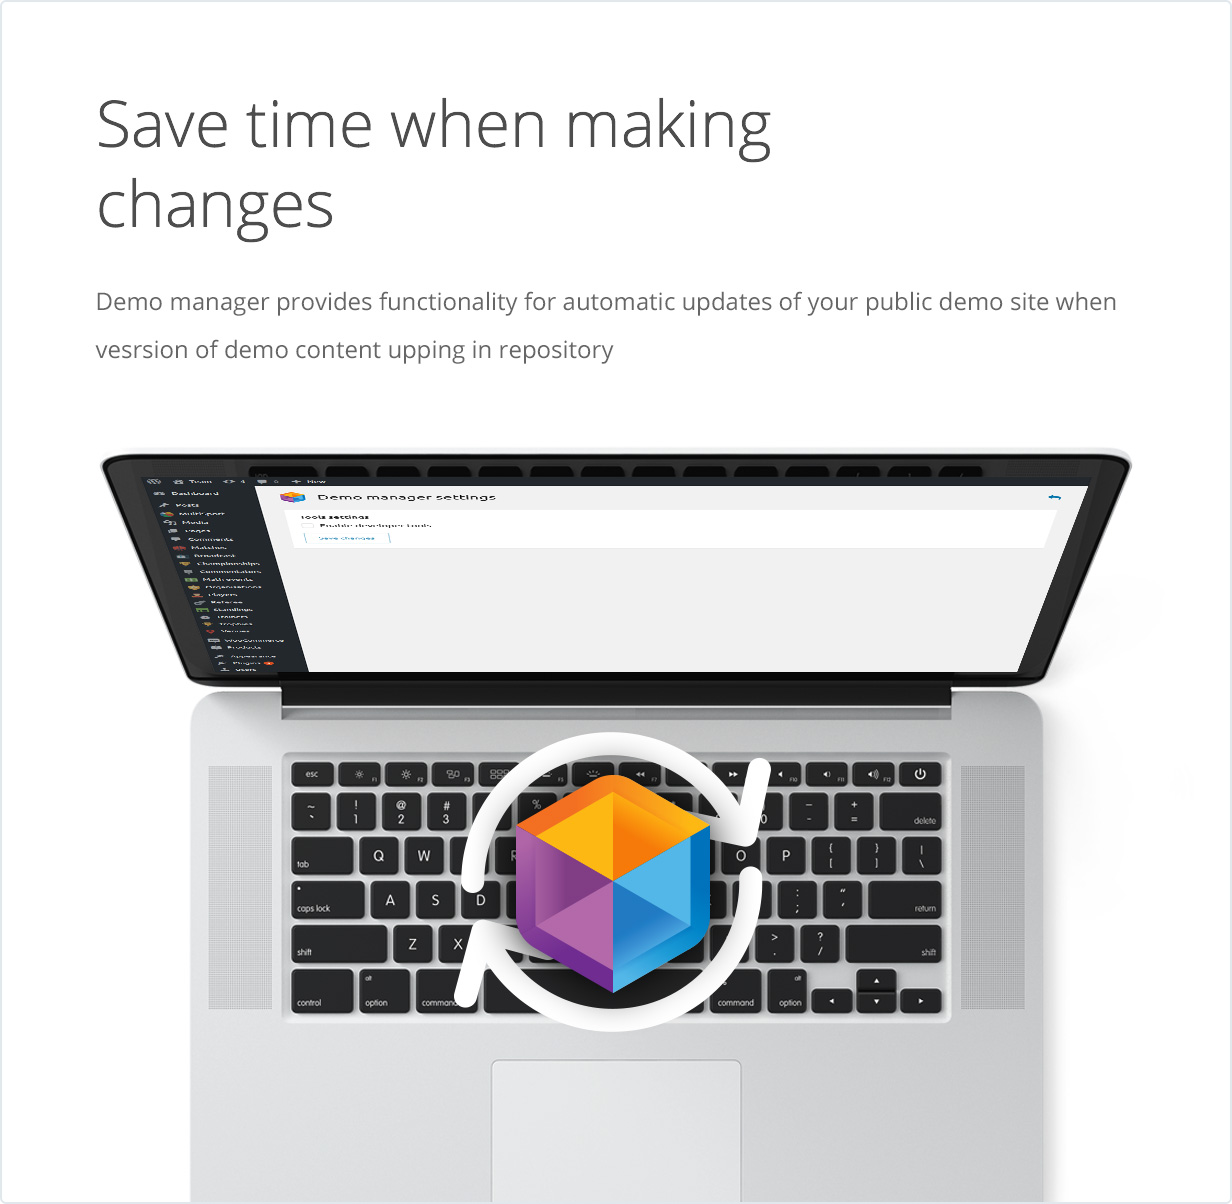 Save time when making changes